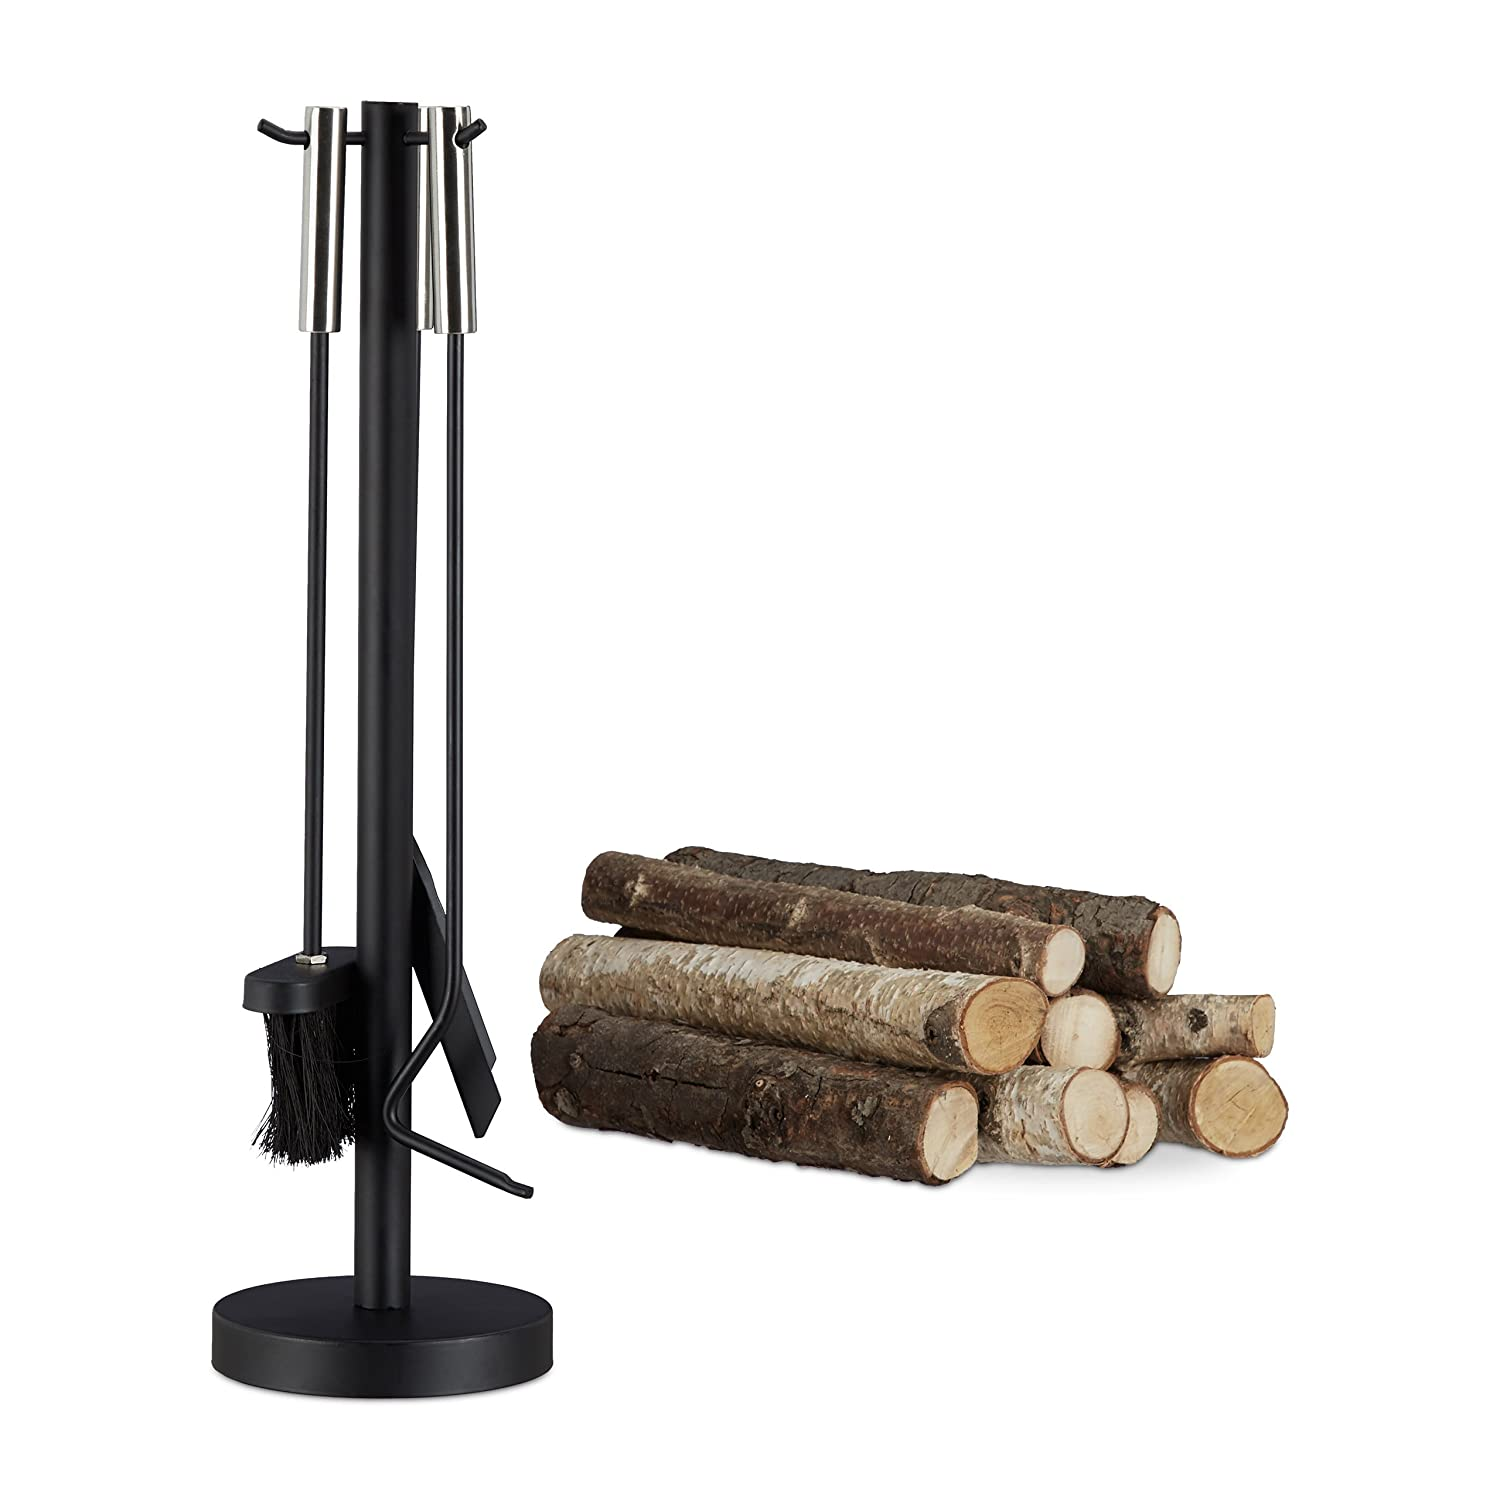 Relaxdays Modern Steel Fire Irons. 4-Piece Fireplace Companion Set with Shovel, Broom, Poker and Rack, Black 10022295